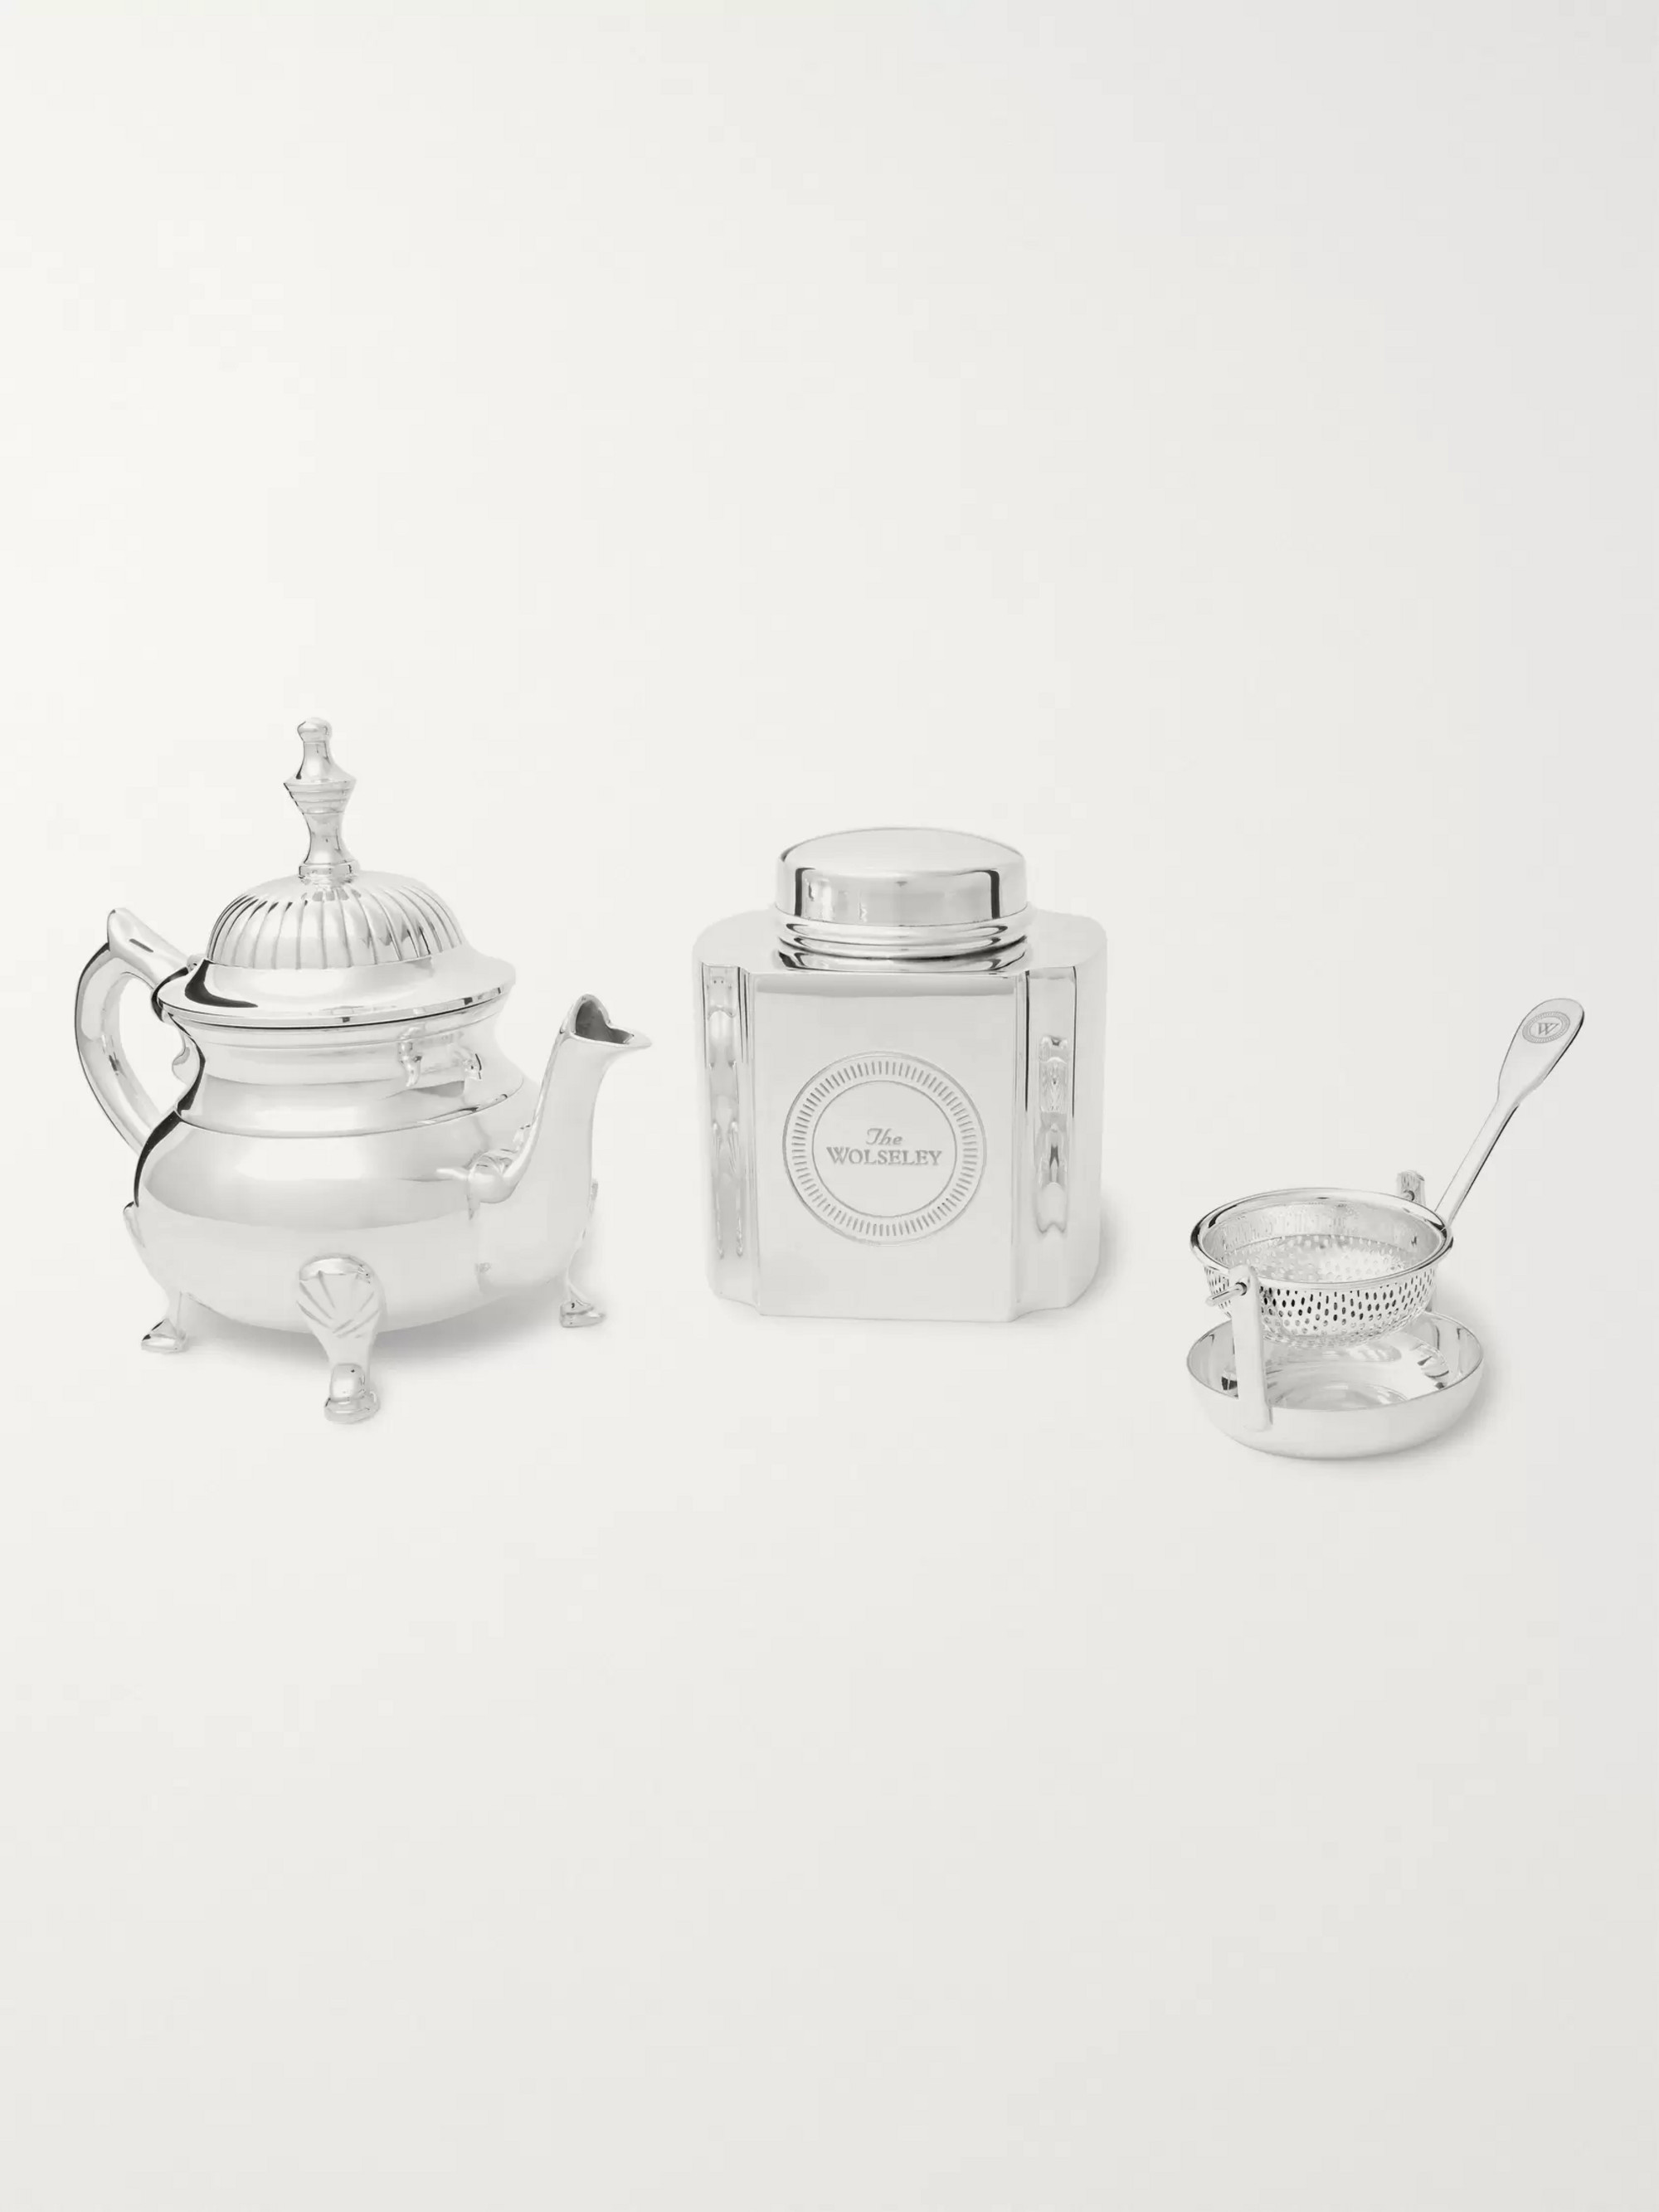 The Wolseley Collection Silver-Plated Tea Set